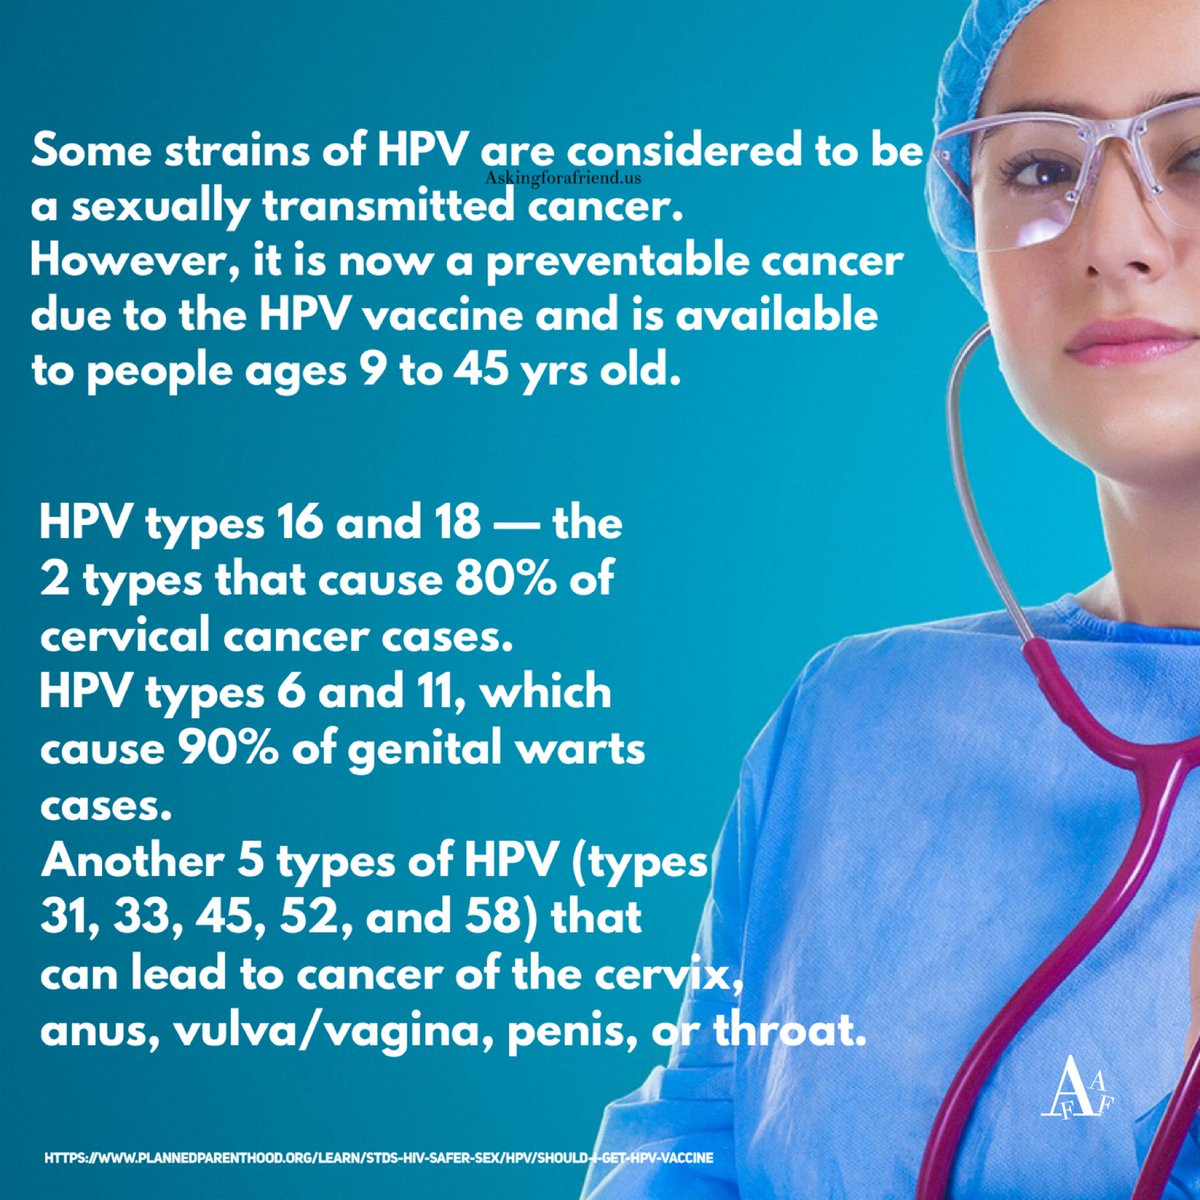 hpv18 hashtag on Twitter